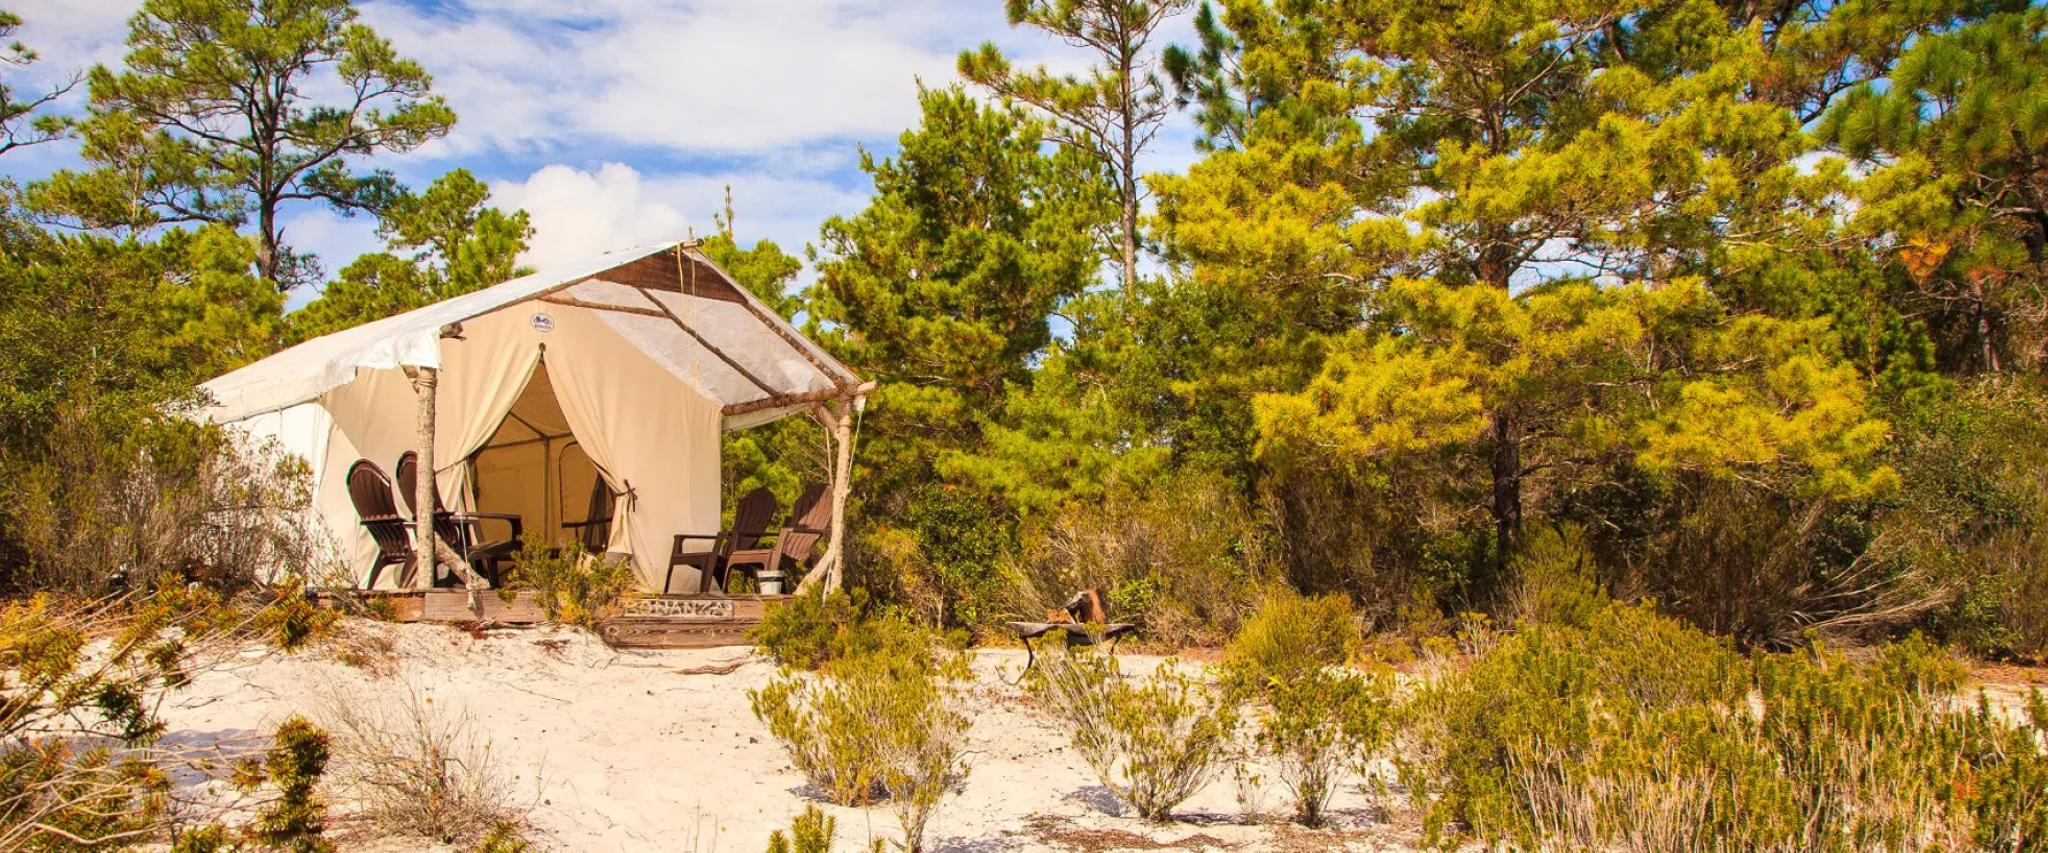 Primitive Campsites at Gulf State Park